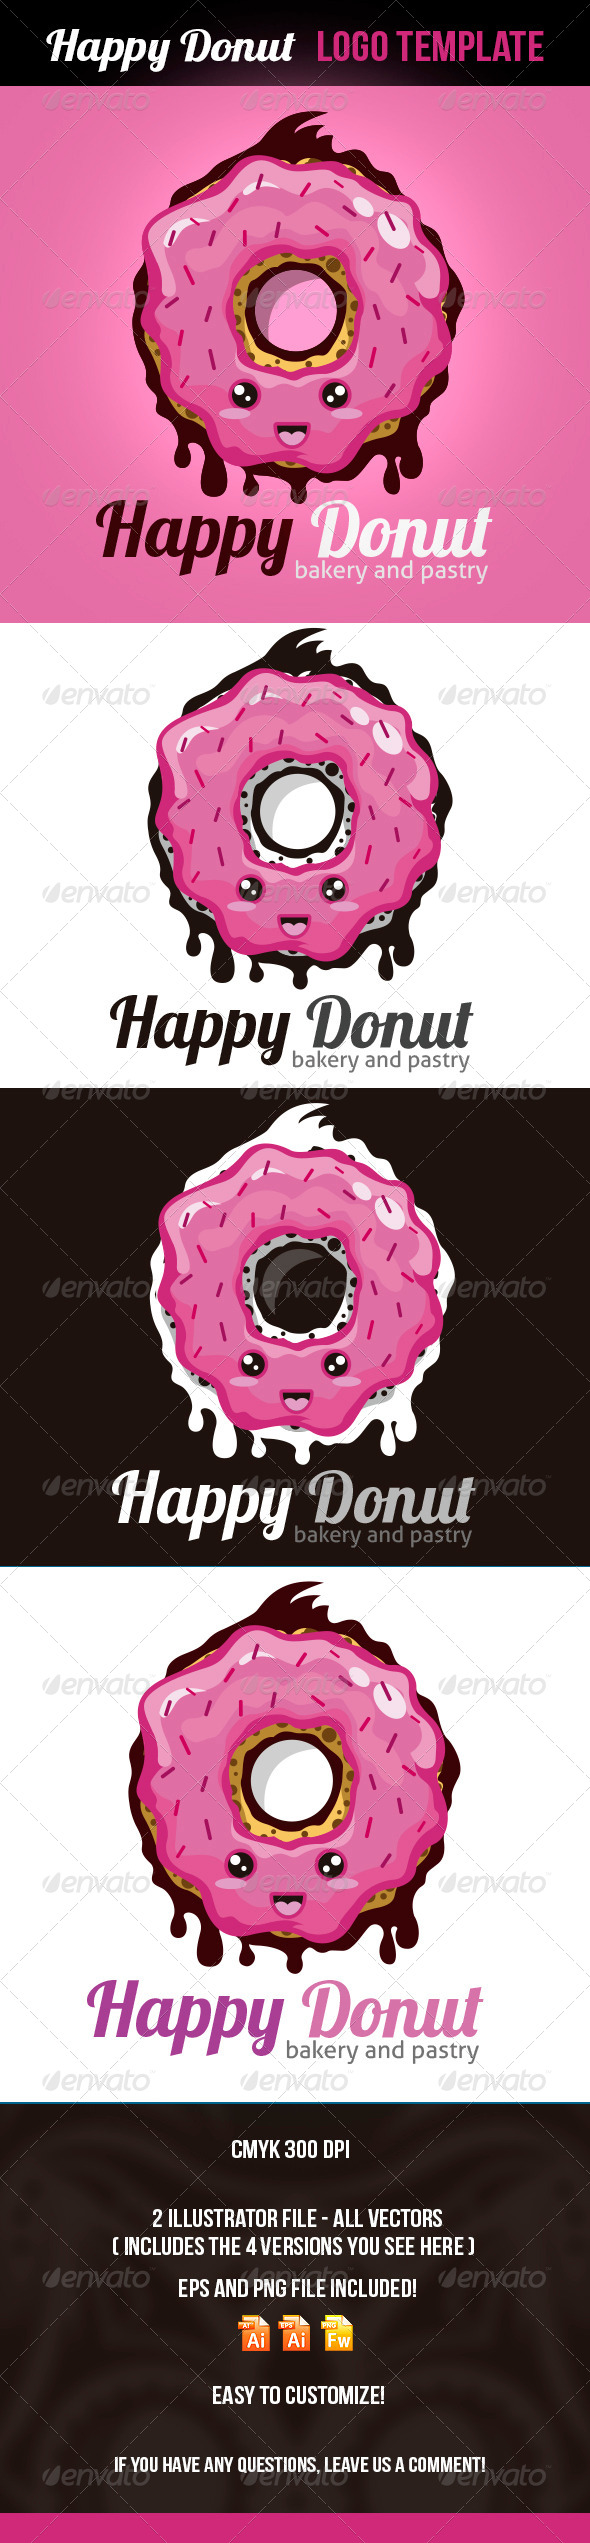 Happy Donut Logo Template